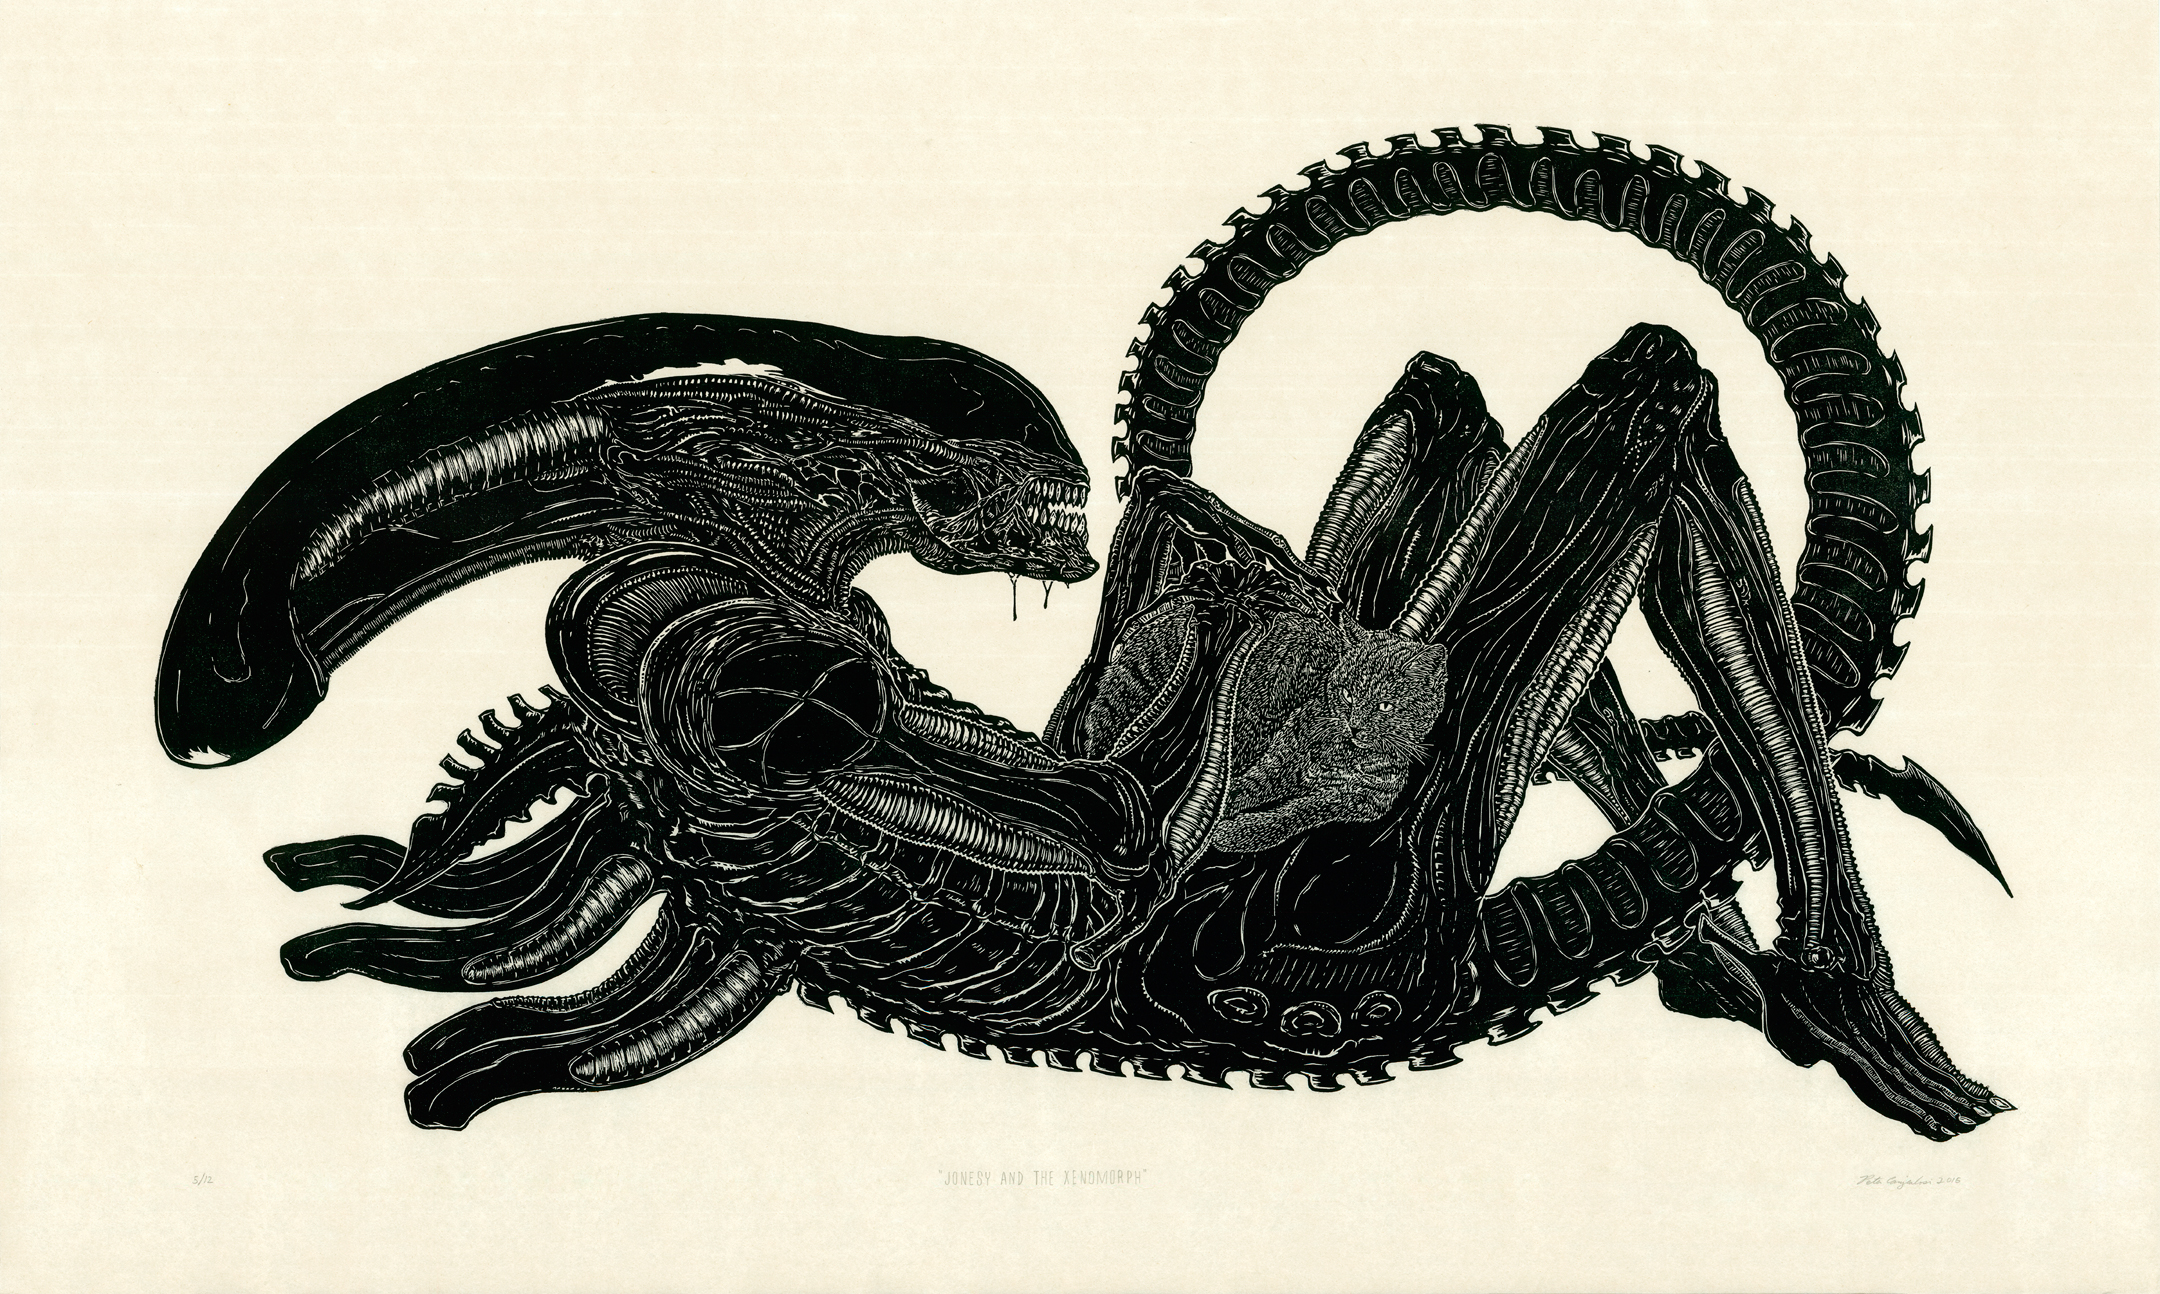 """Jonesy and the Xenomorph 2016   Woodcut Print on Paper  Print Measurement: 24"""" x 45"""" Paper Dimensions: 30"""" x 50"""" Edition of 12"""